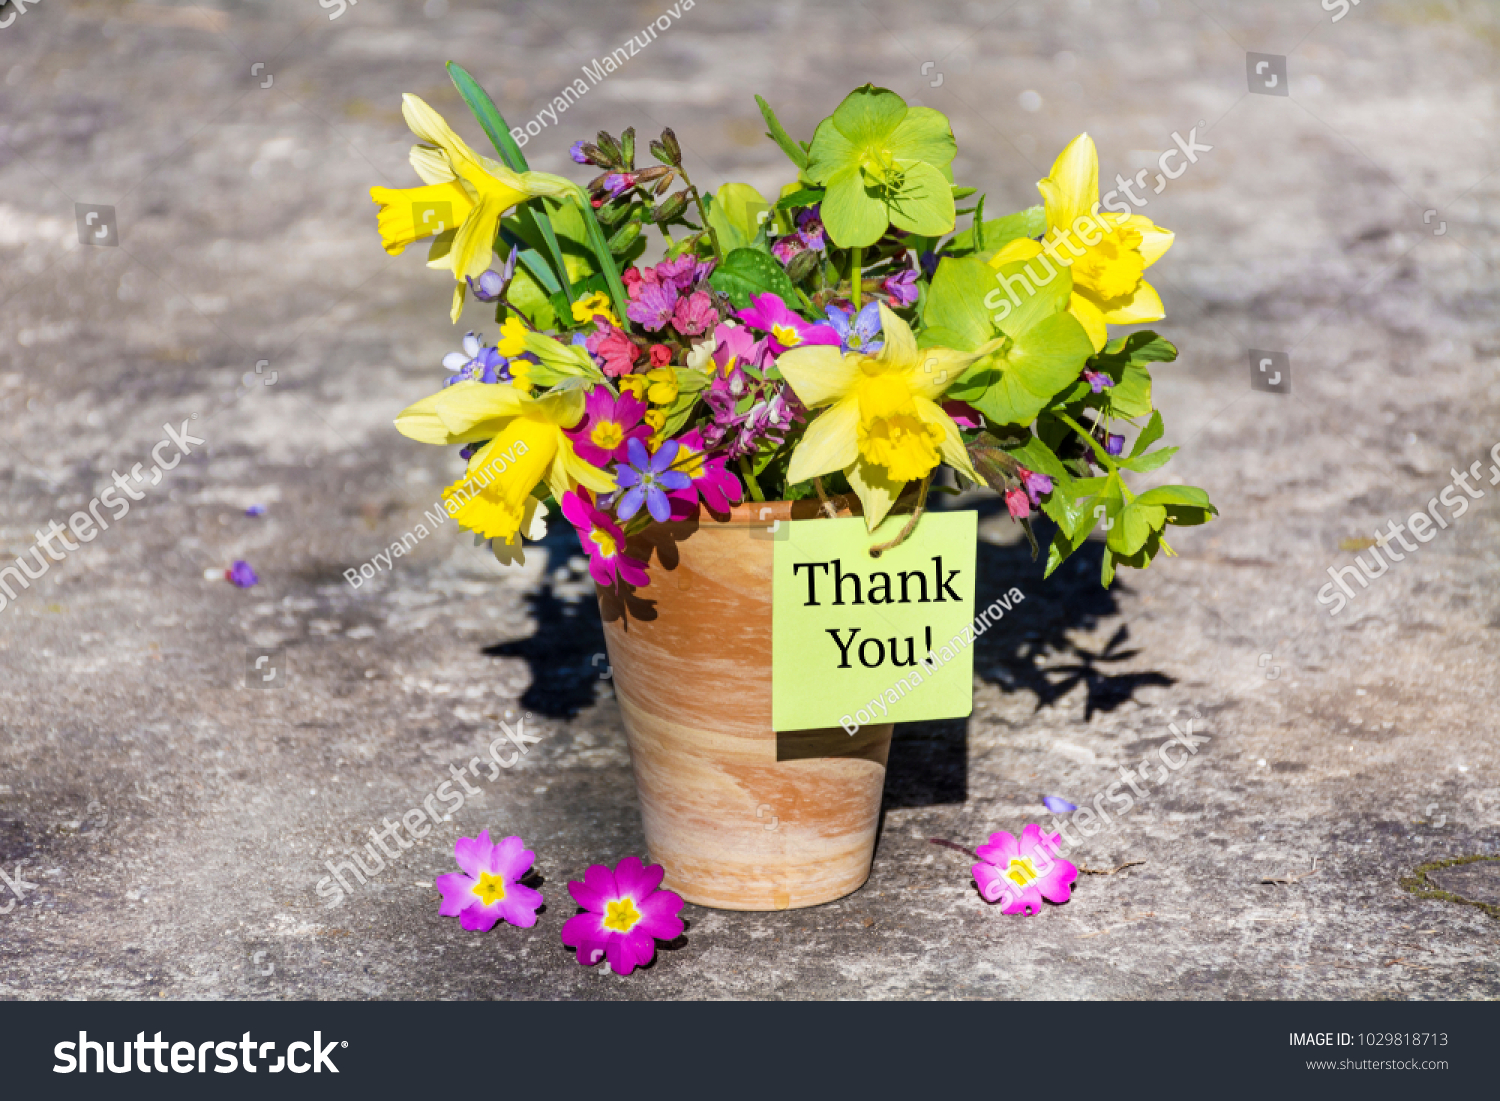 Spring Bouquet Flowers Thank You Message Stock Photo (Edit Now ...